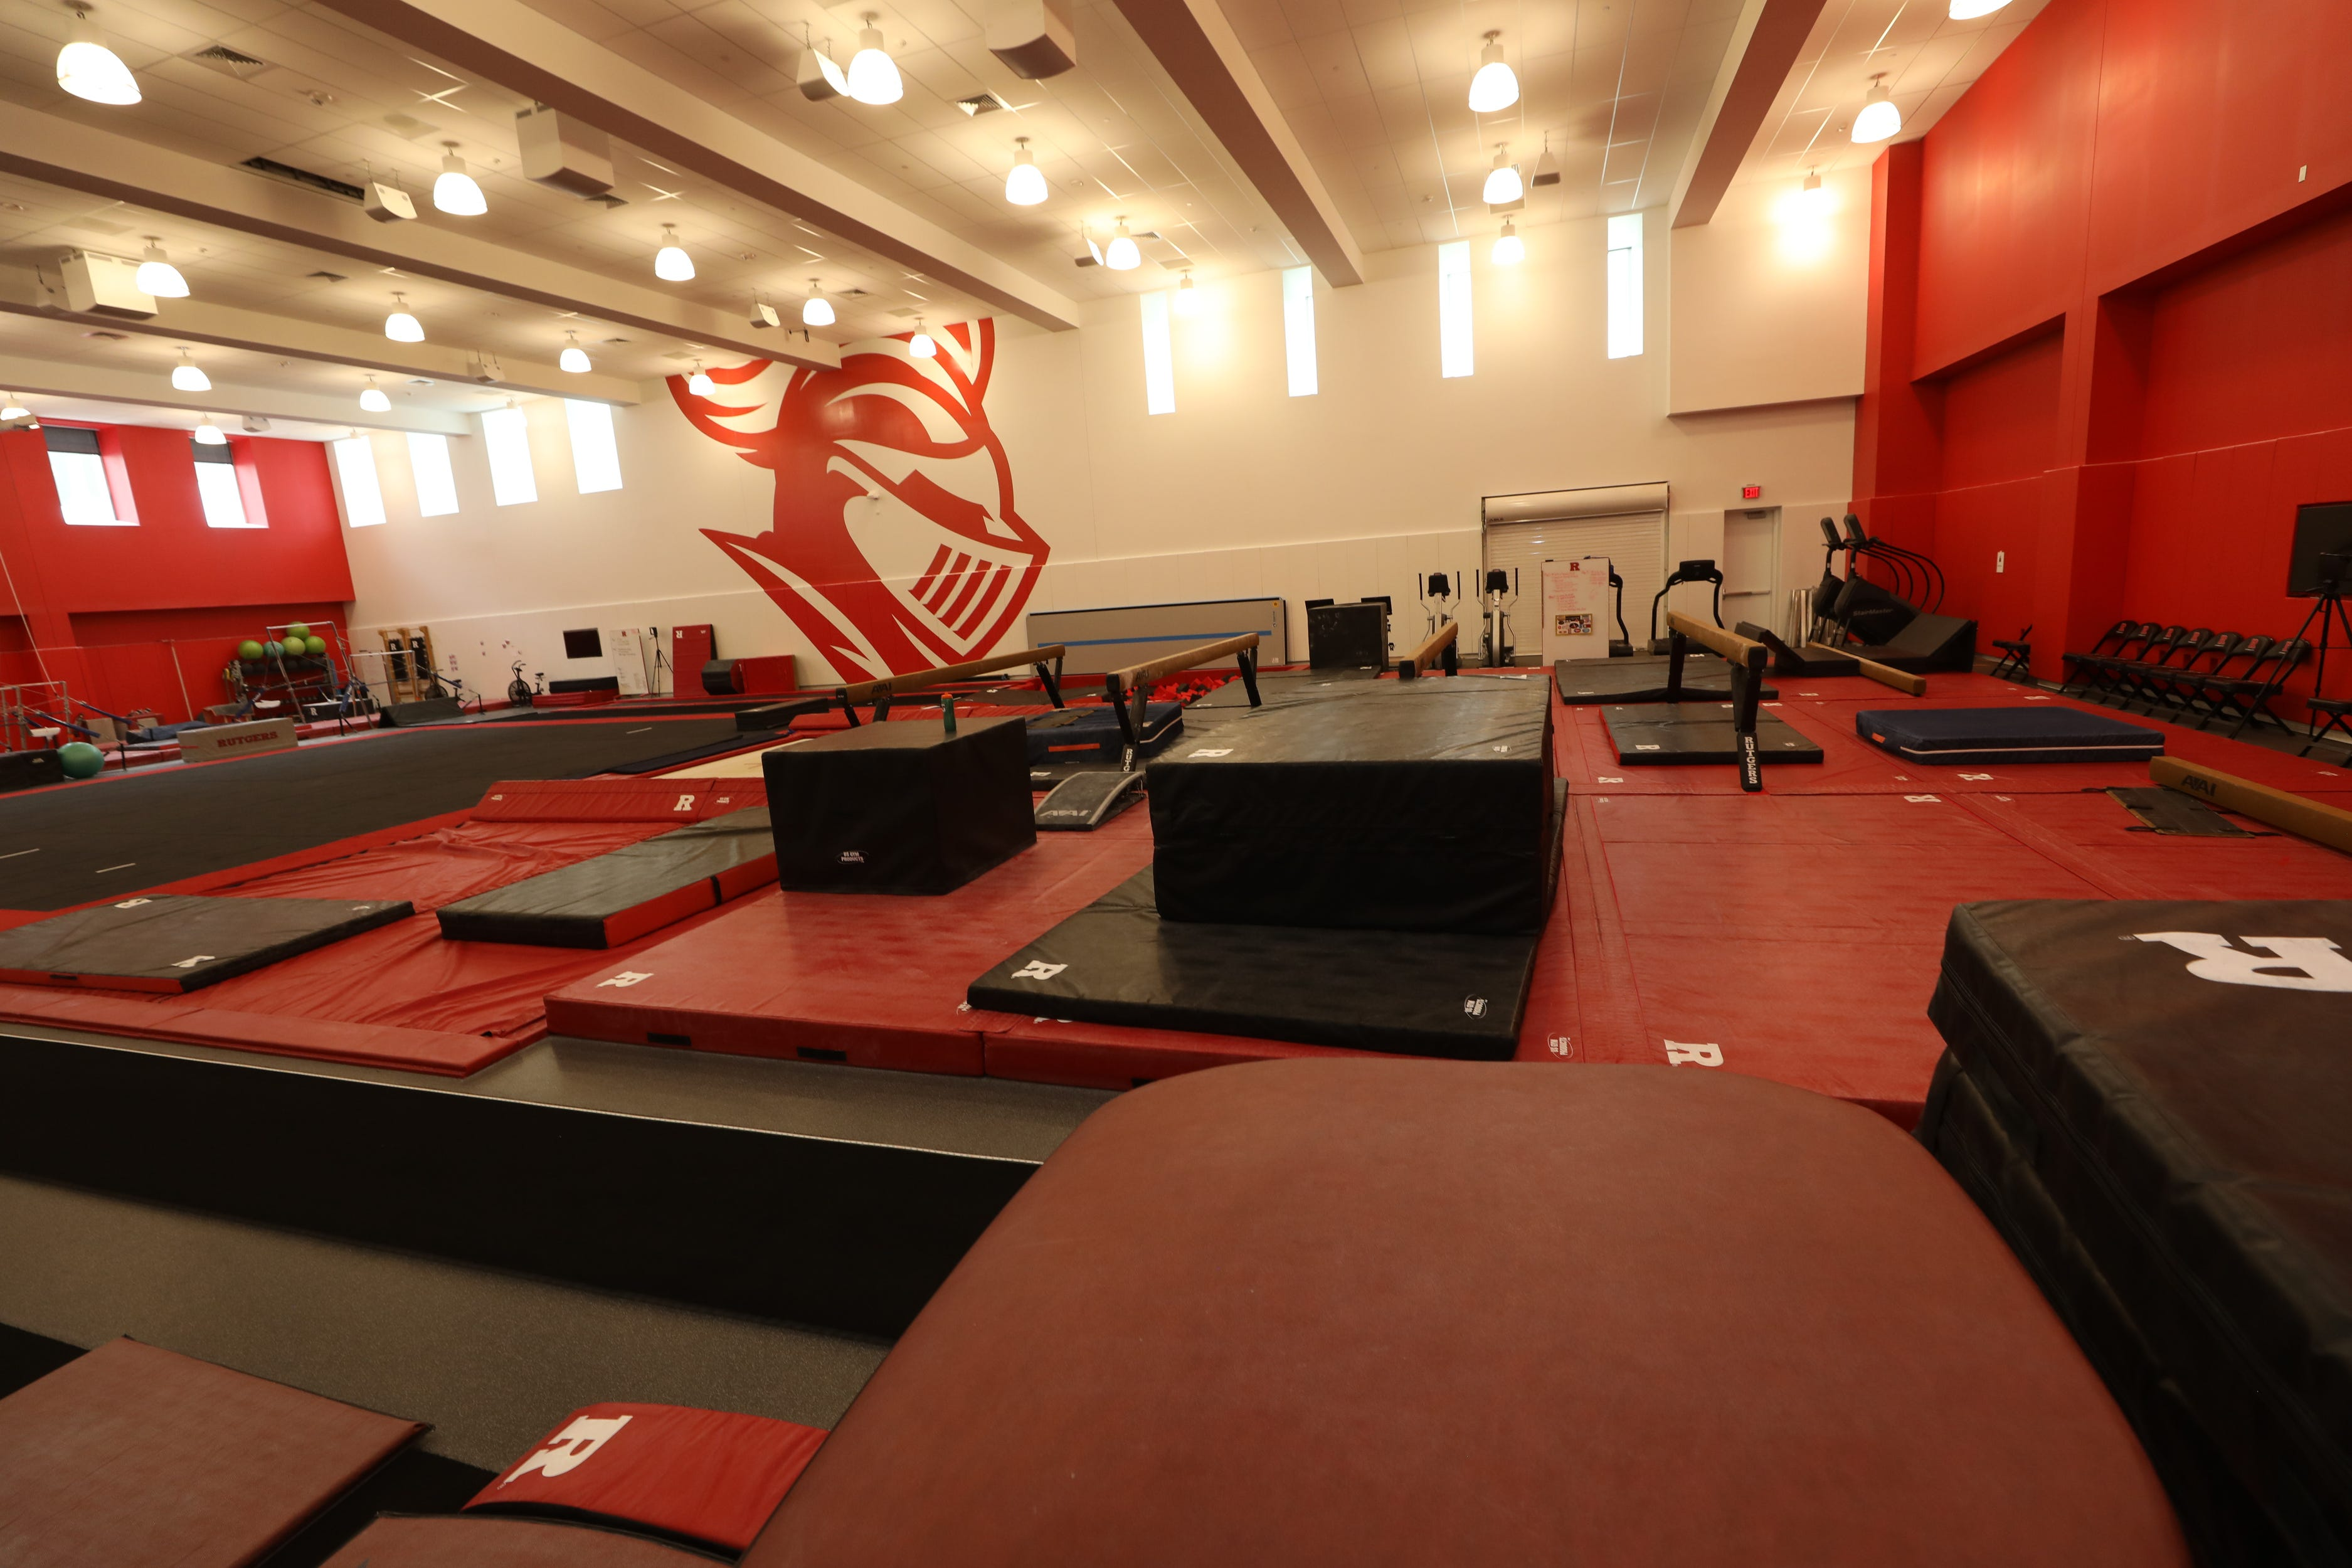 The gymnastics room of the RWJBarnabas Health Athletic Performance Center, part of two new athletic facilities on the campus of Rutgers University.